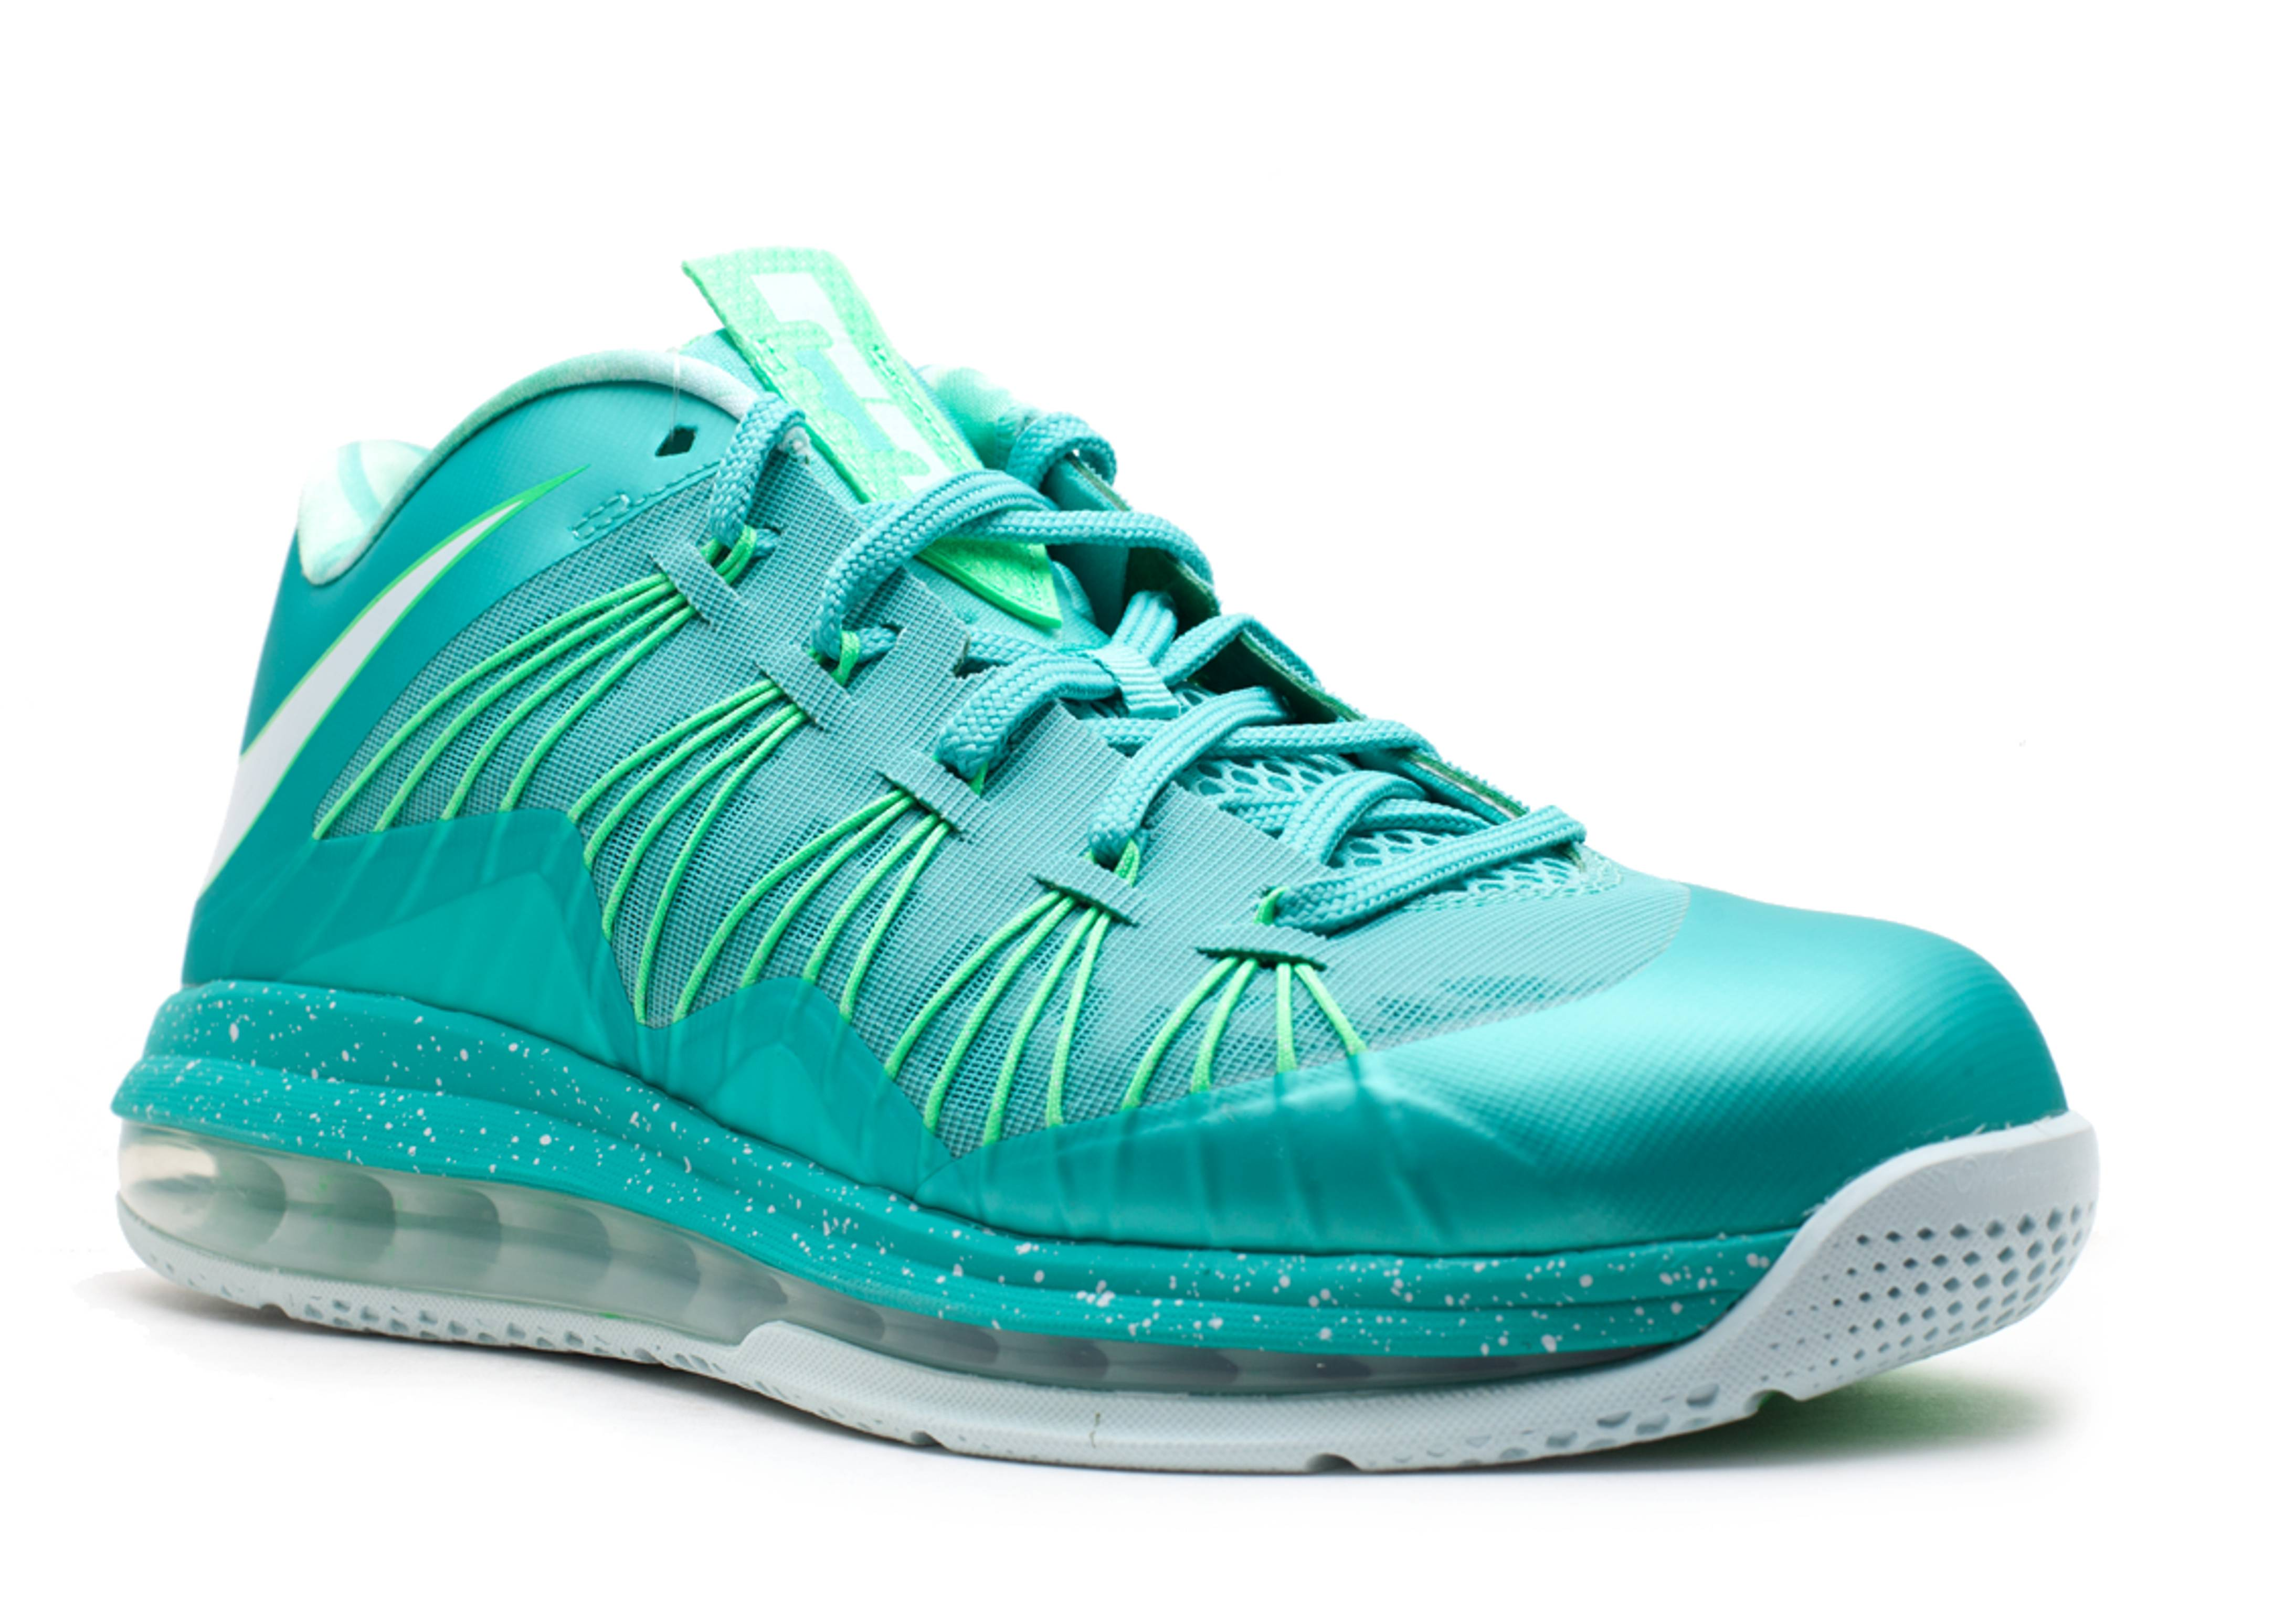 release date 5180b 25ea0 buty nike air max lebron 9 low easter